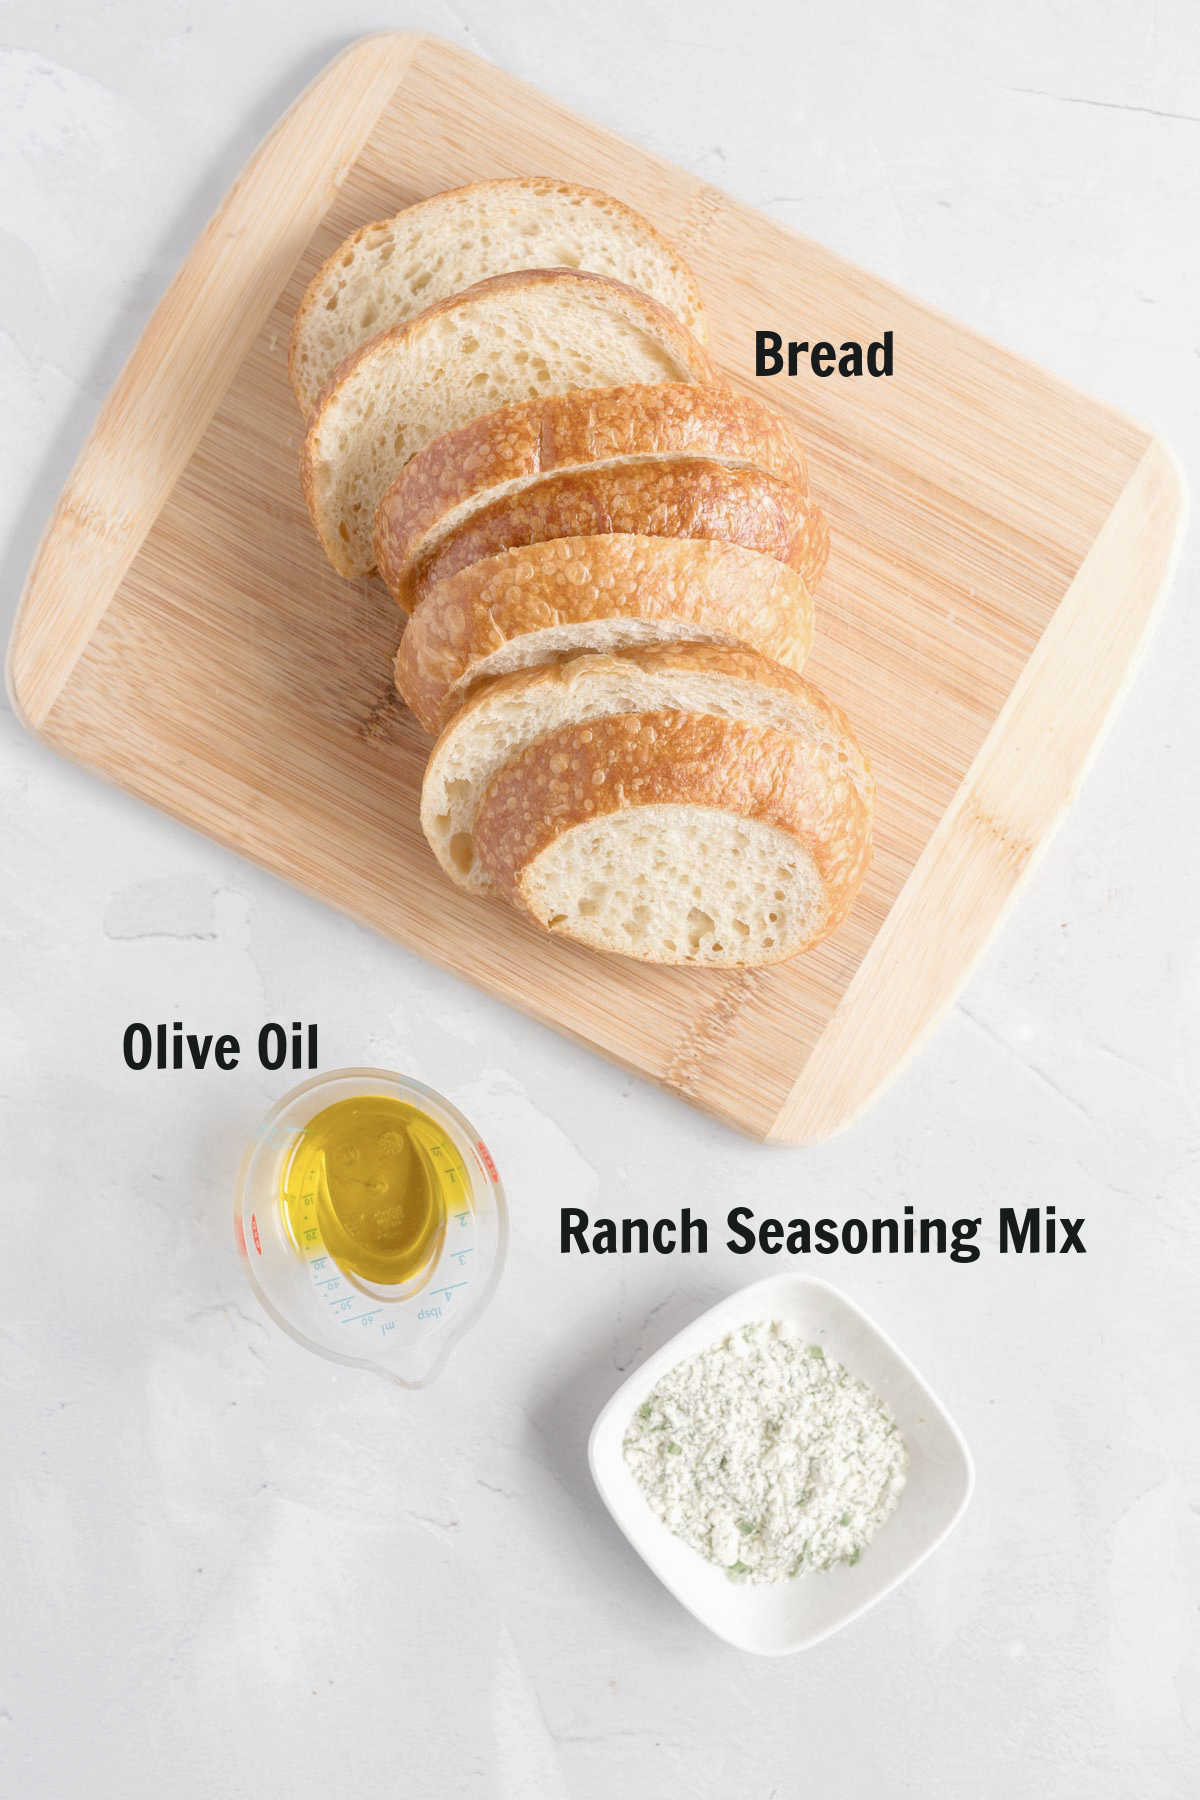 Bread slices on a cutting board, small measuring cup of olive oil and dish of ranch seasoning.